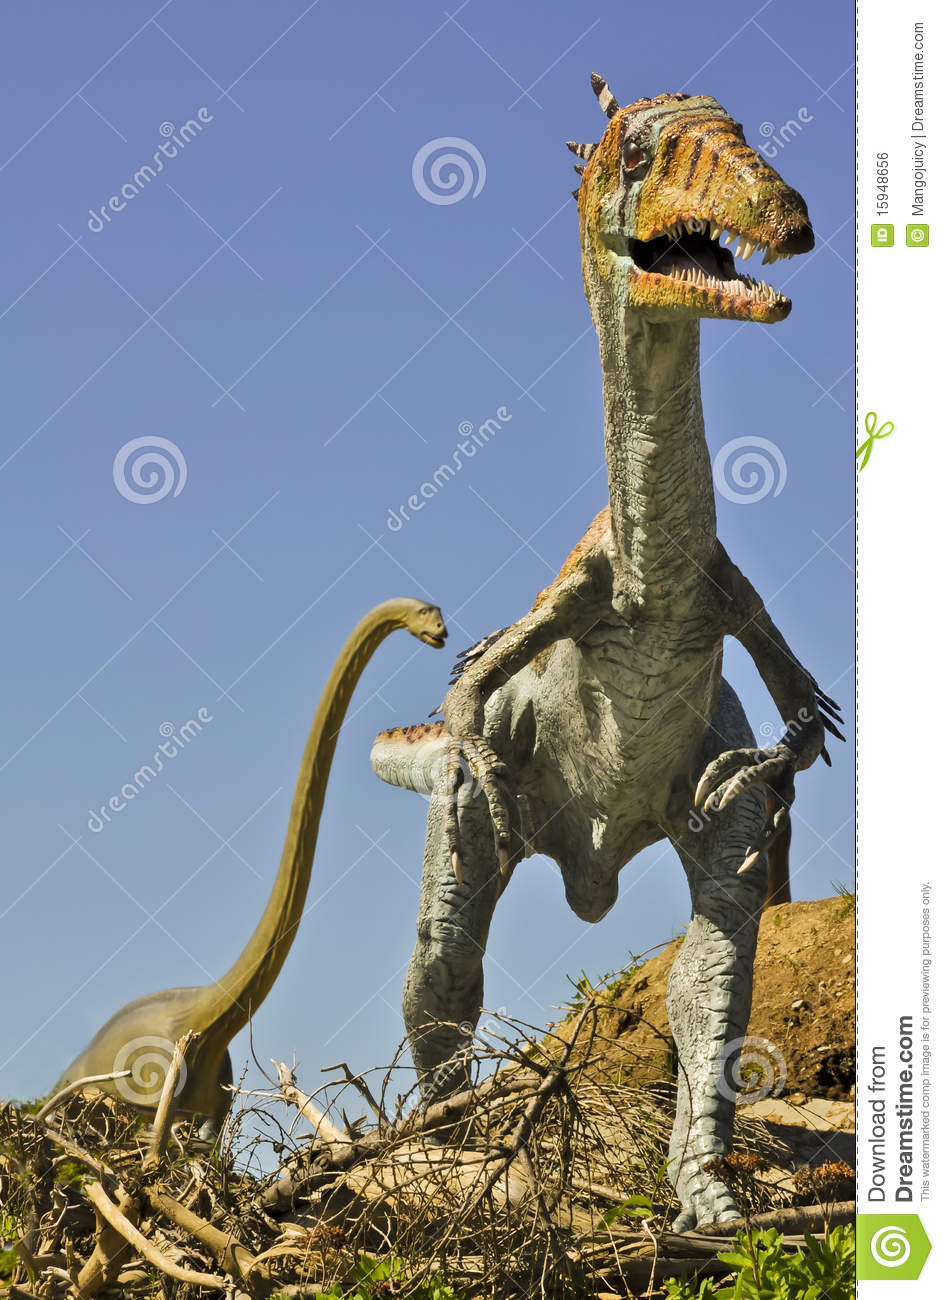 Carnivorous Syntarsus and giant Brontosaurus